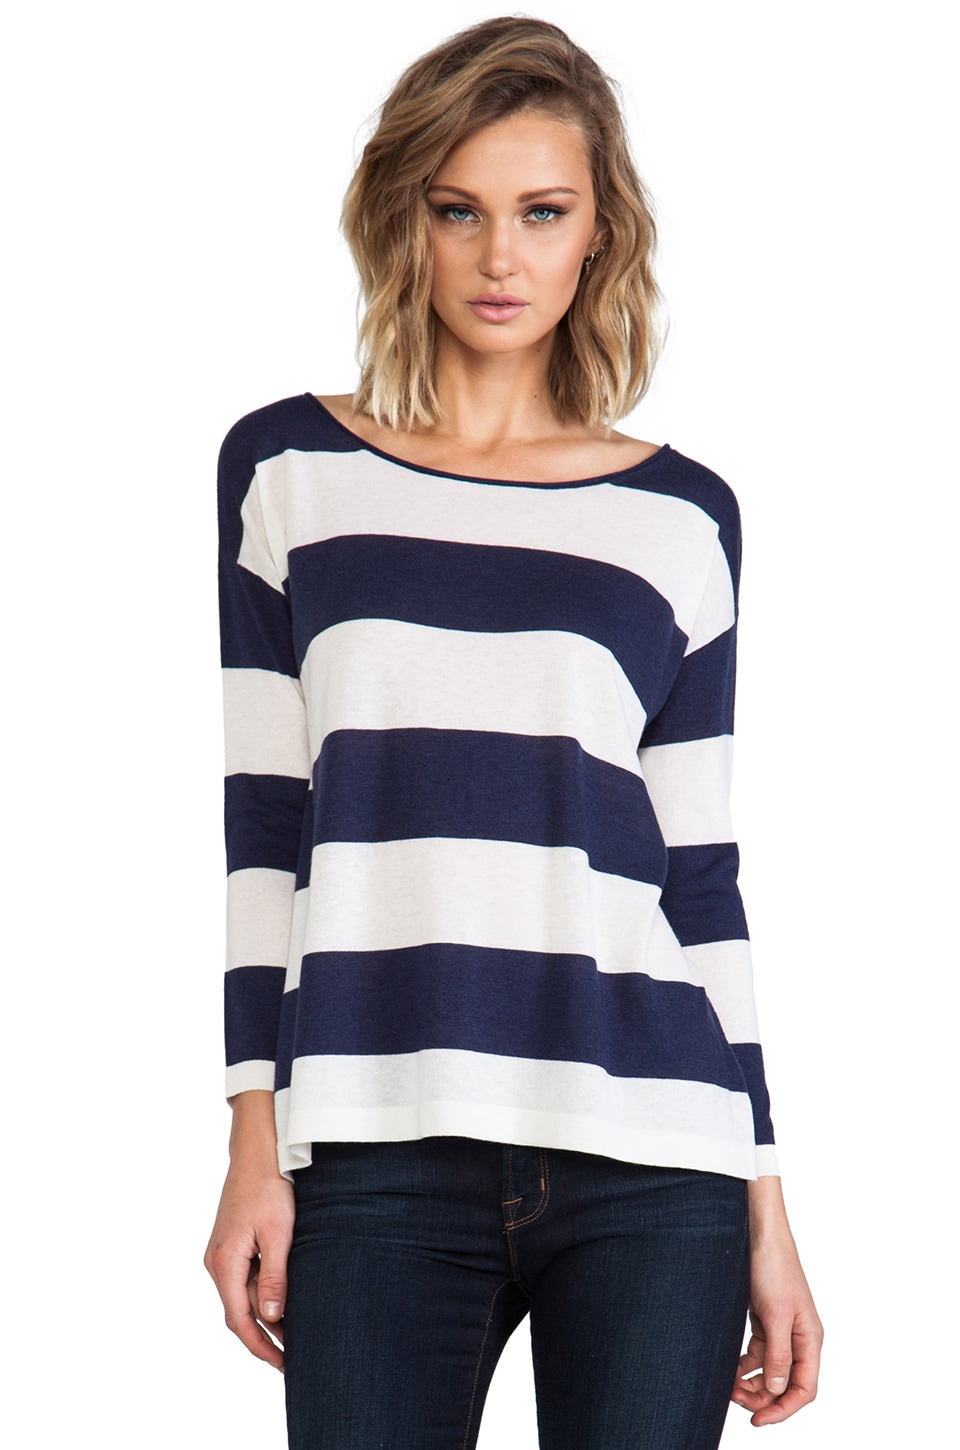 Joie Briella Classic Stripe Pullover in Dark Navy & Porcelain